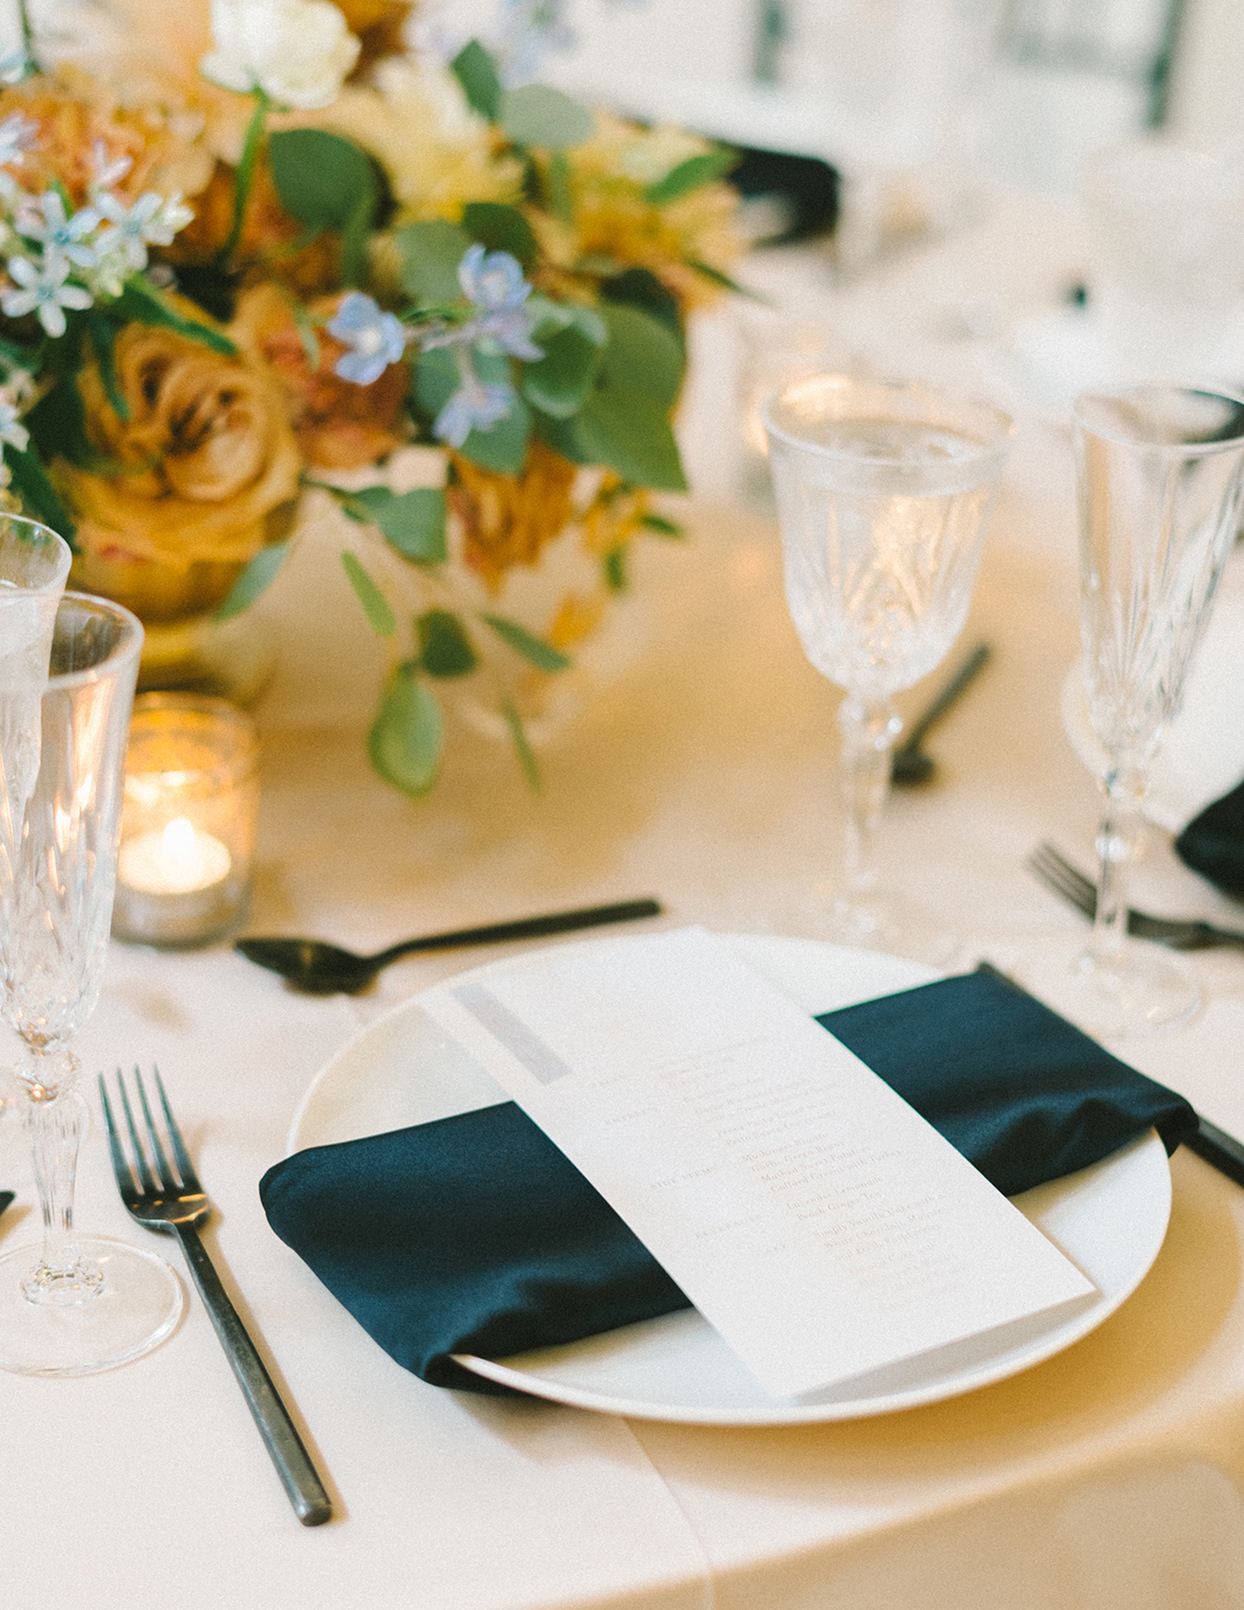 ericka meechaeyl wedding place setting at table